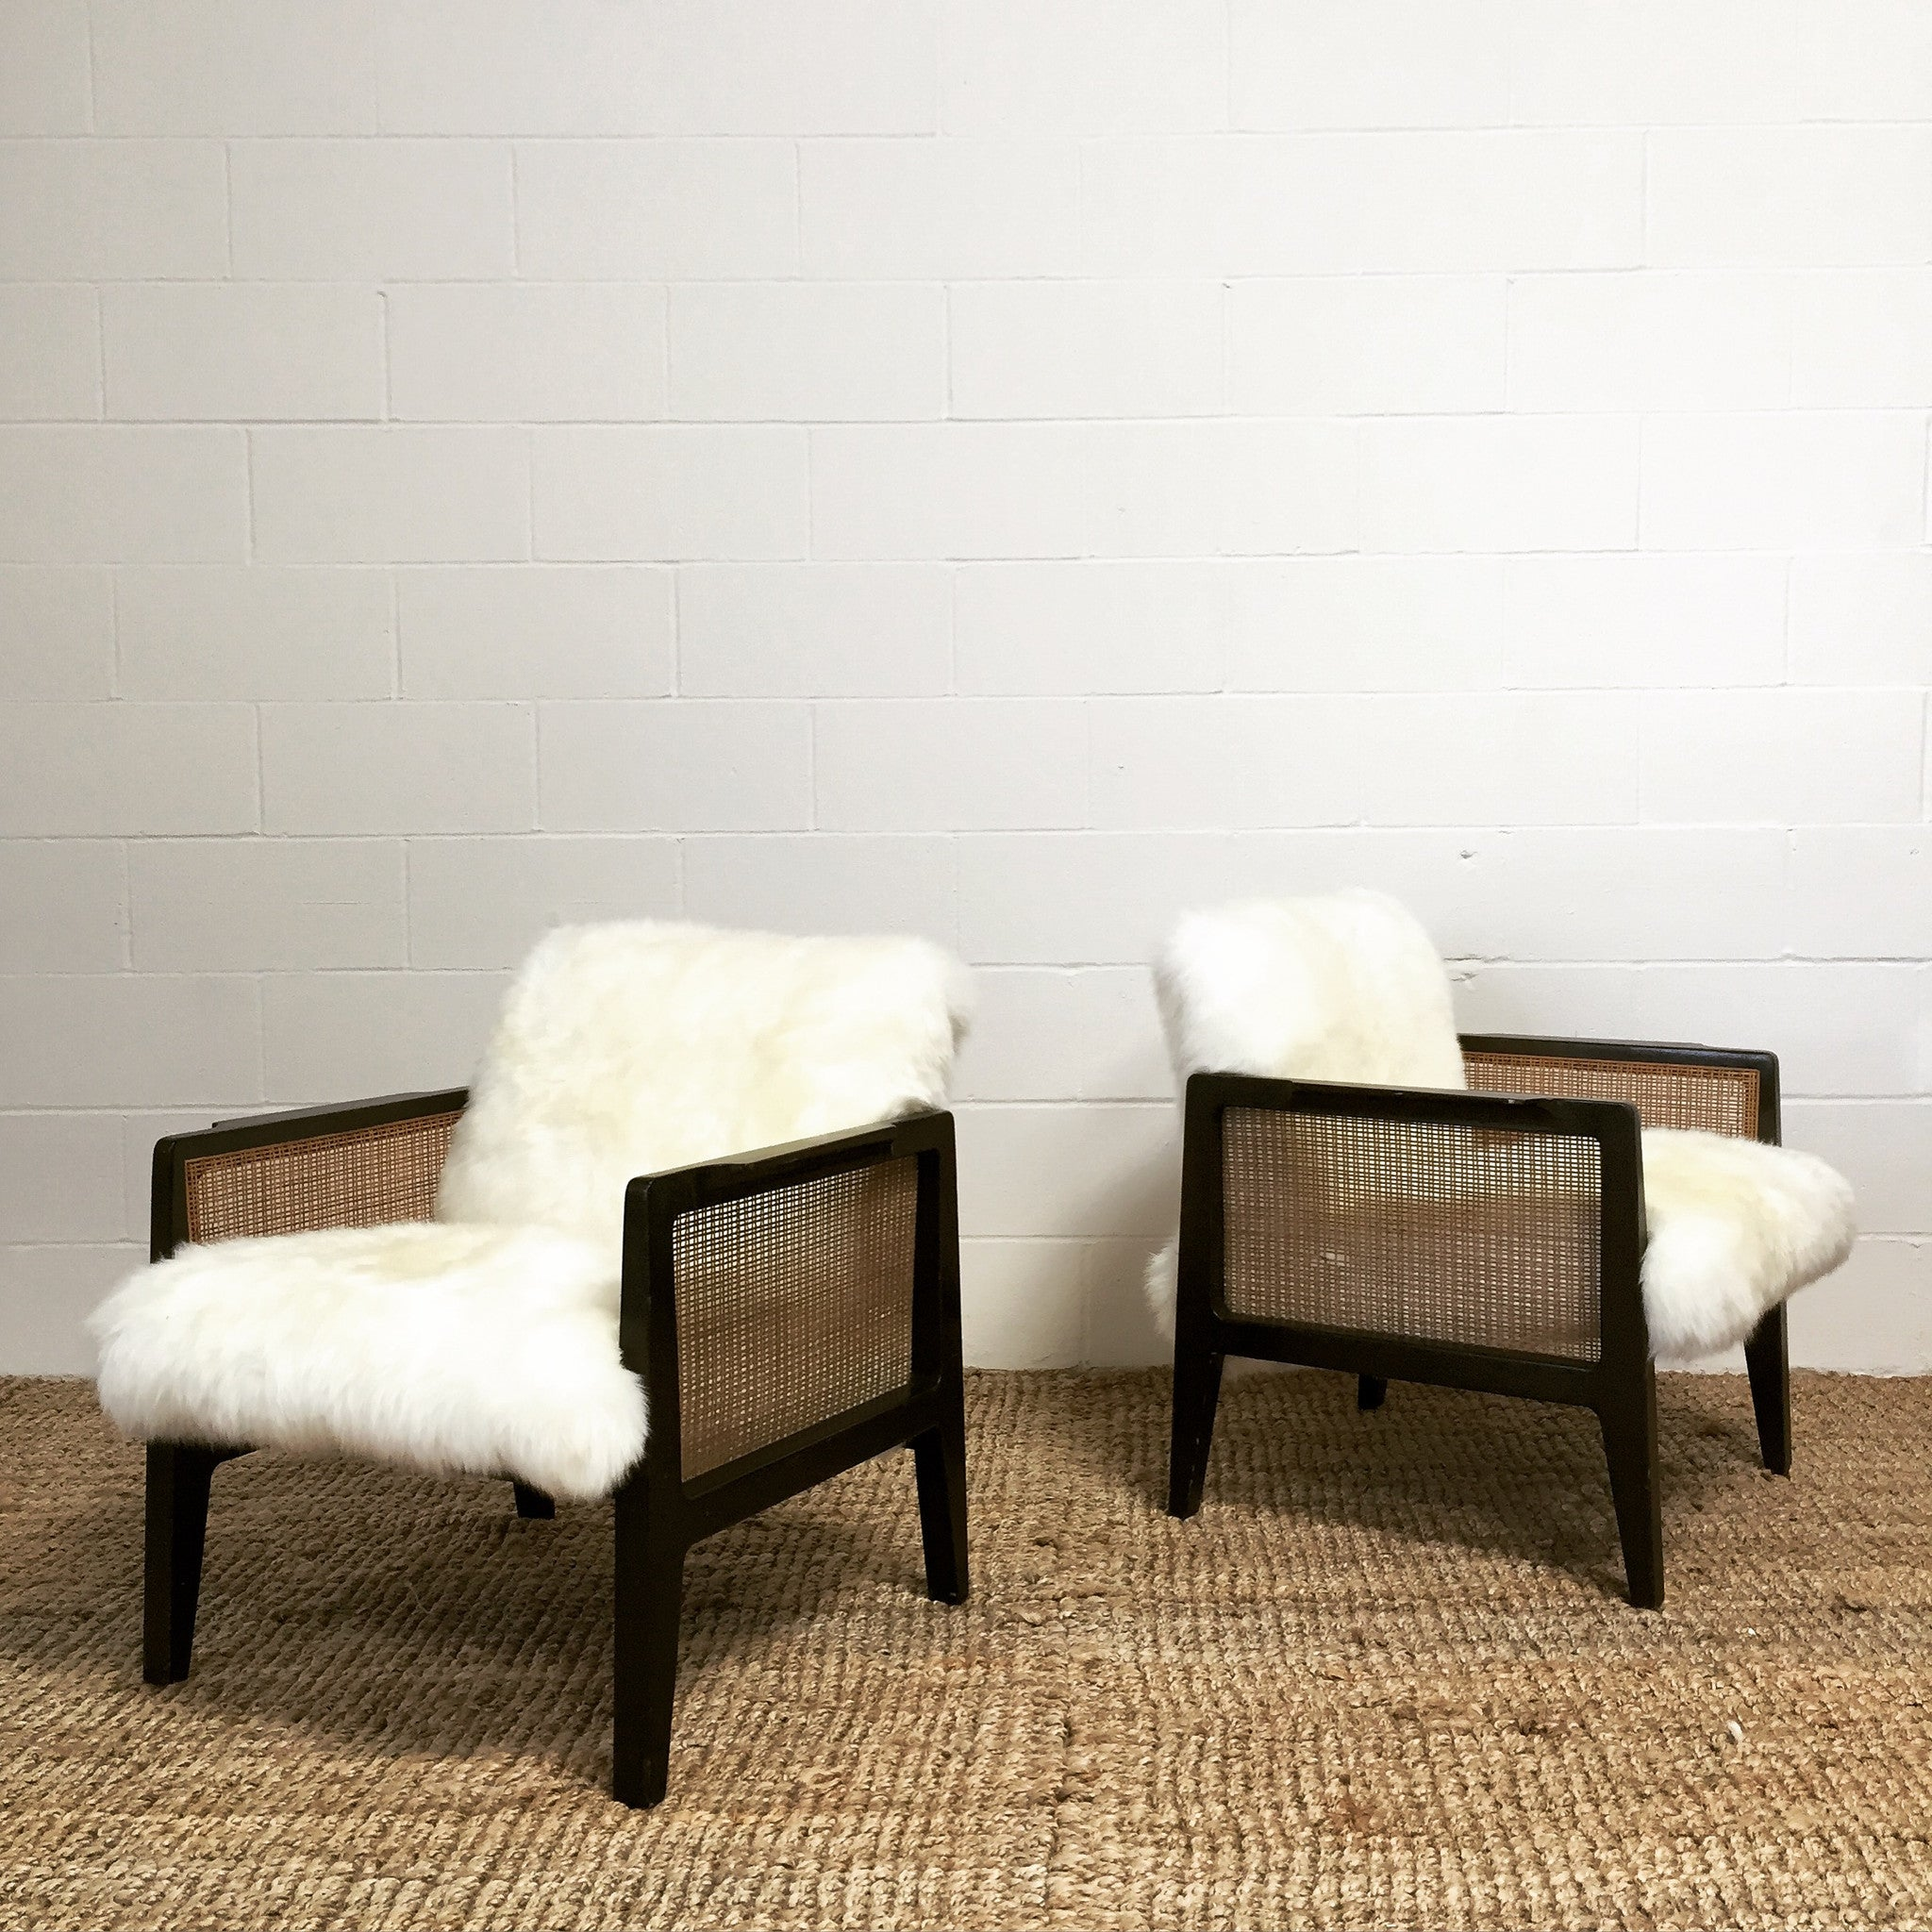 Model 5513 Lounge Chairs in Sheepskin - FORSYTH